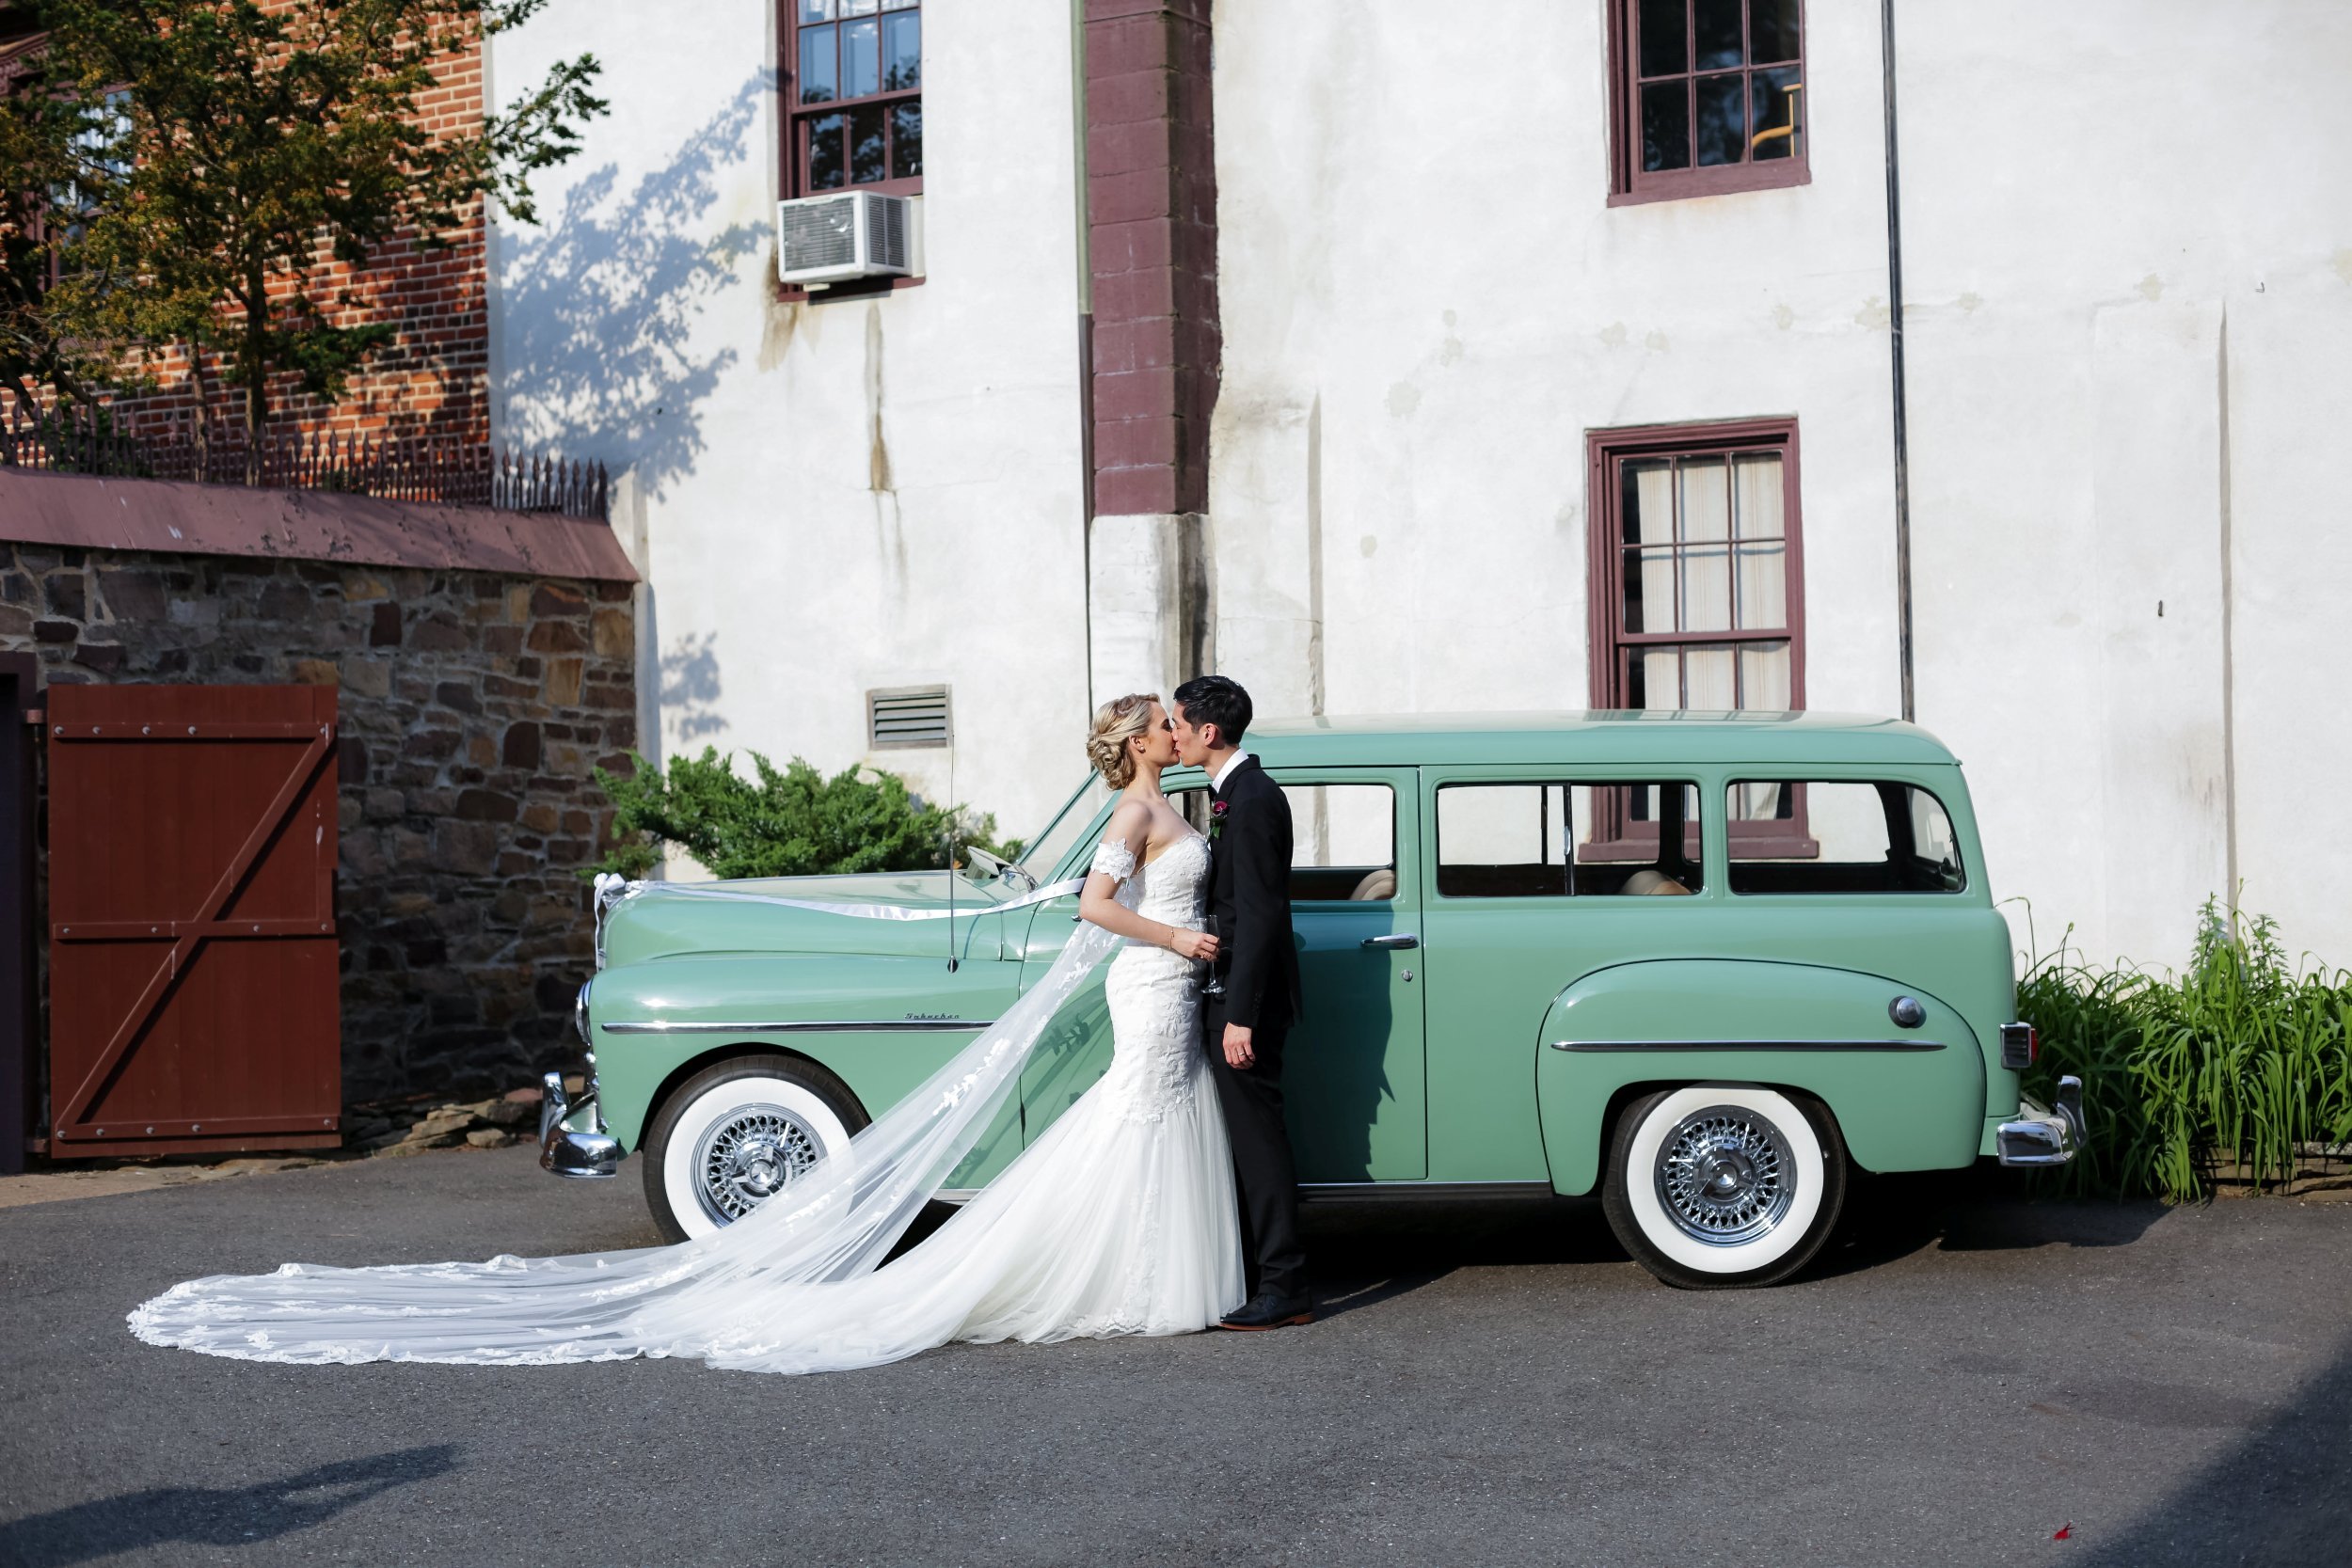 Bride and groom in front of antique car